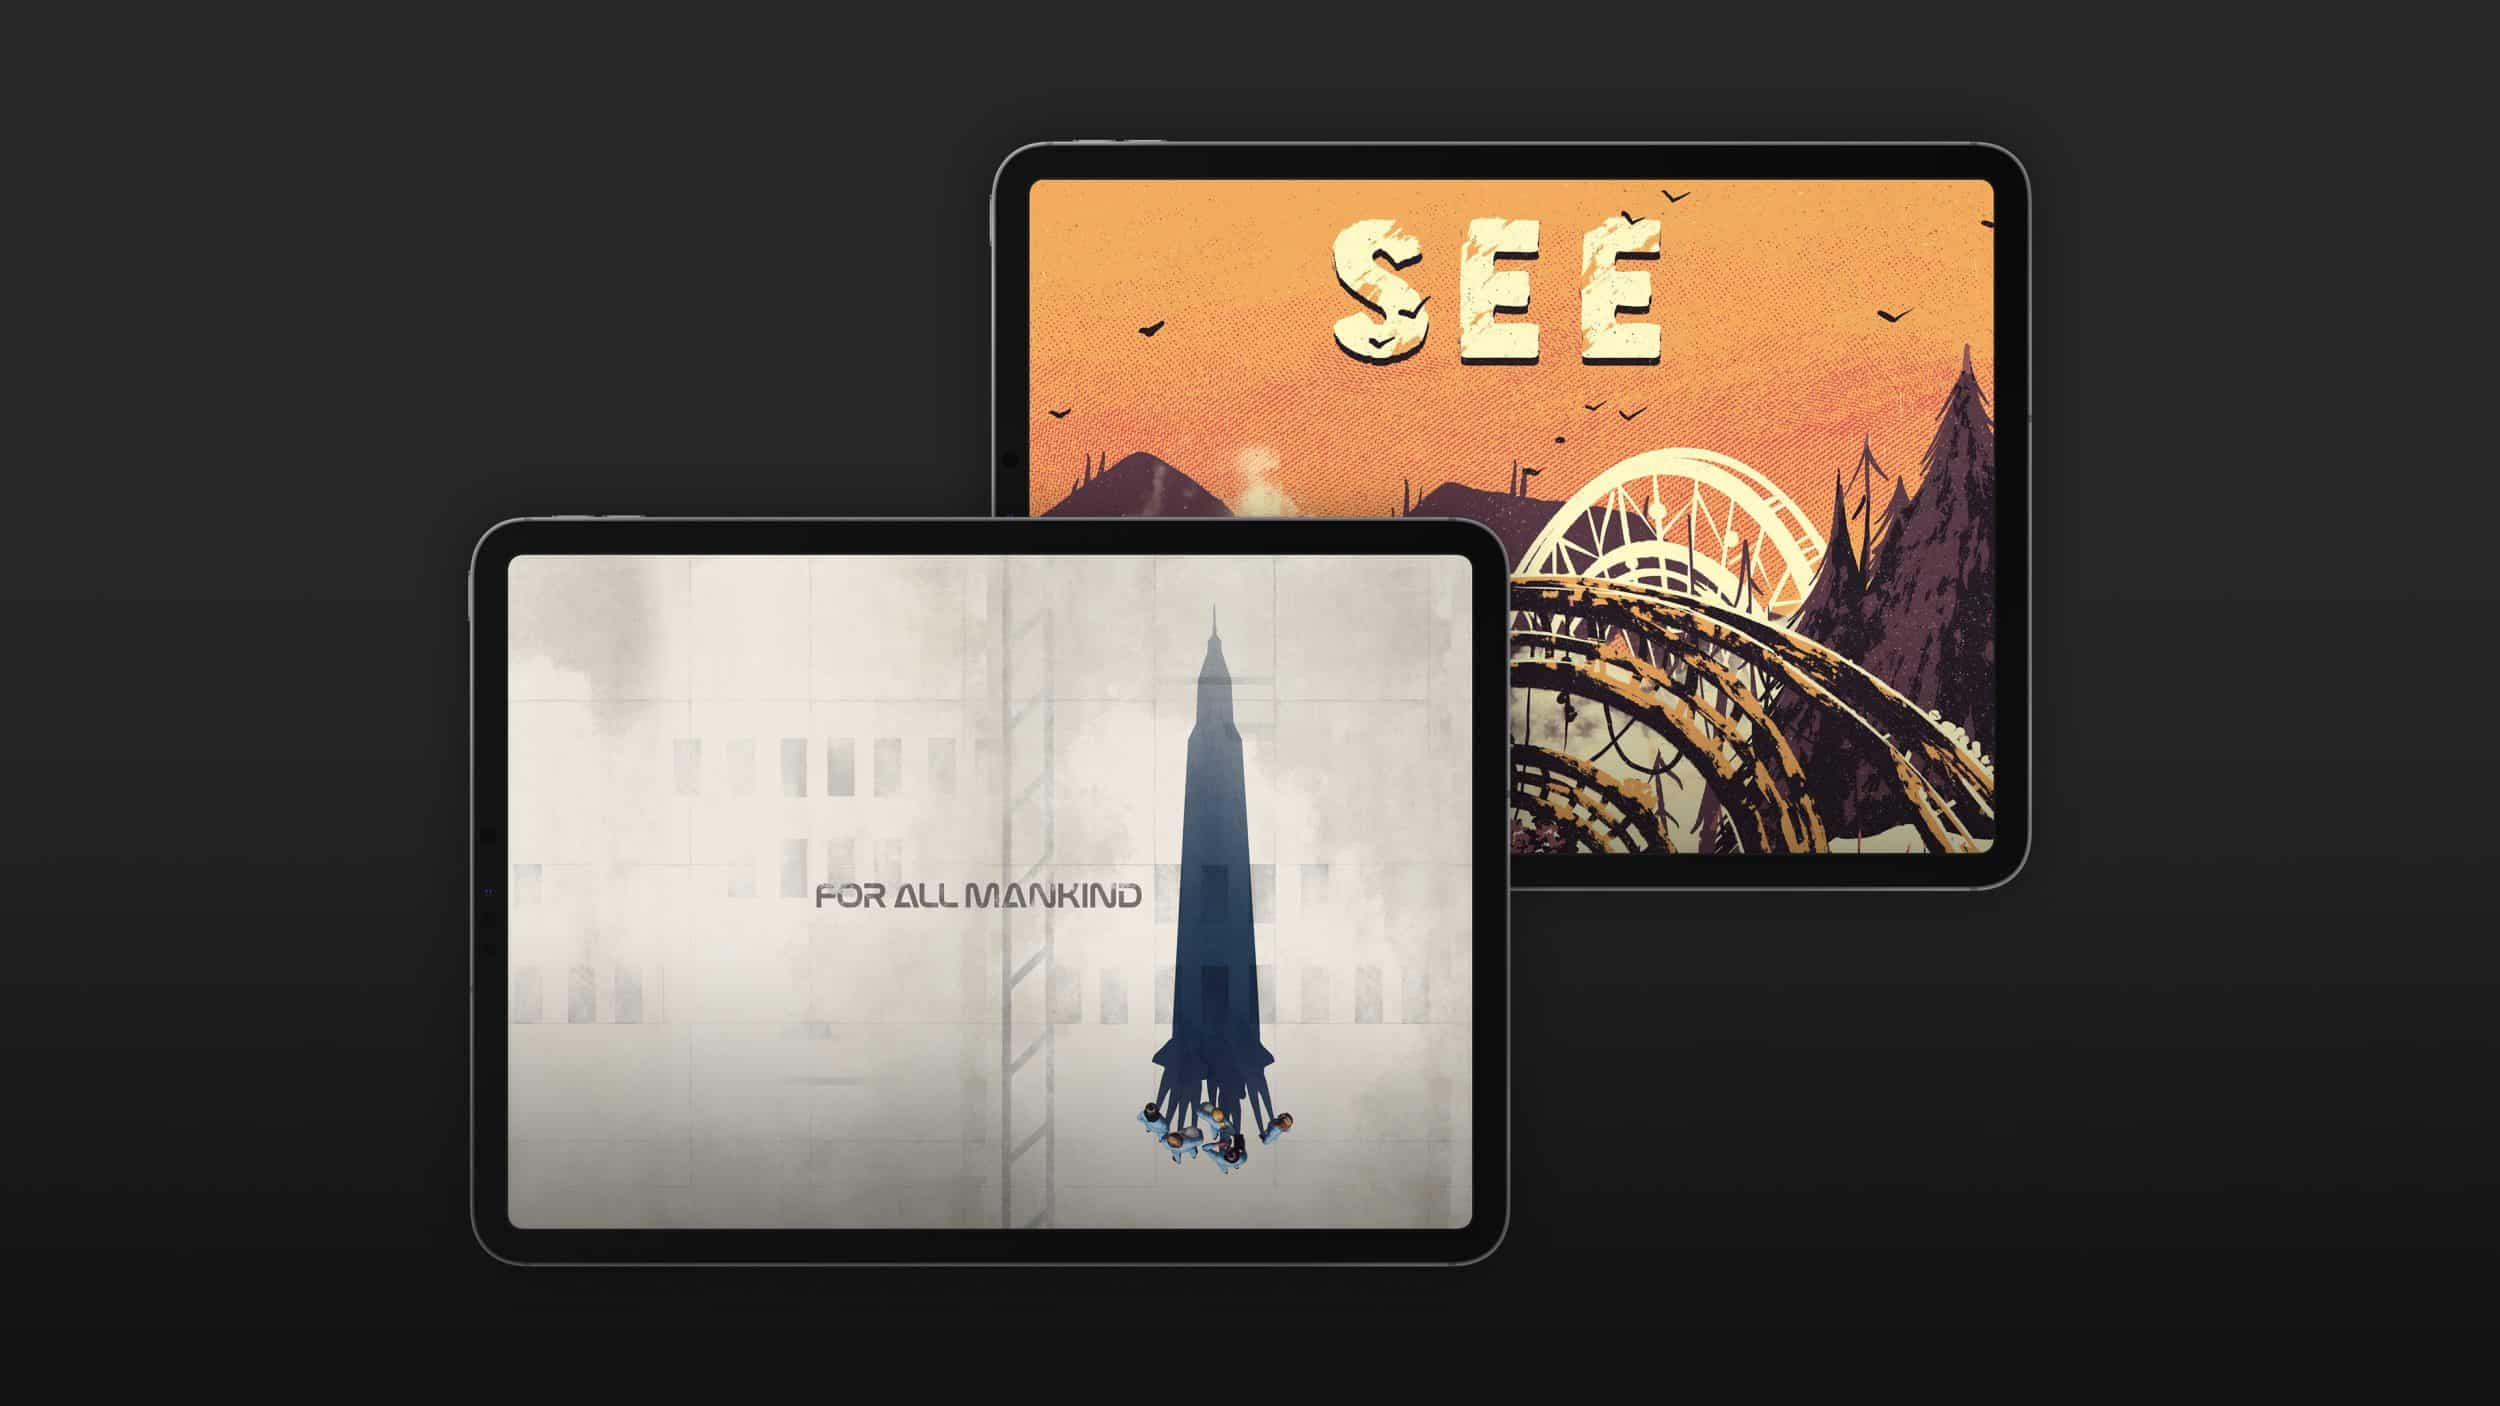 Today at Apple Features 'Apple TV+ iPad Poster Series'